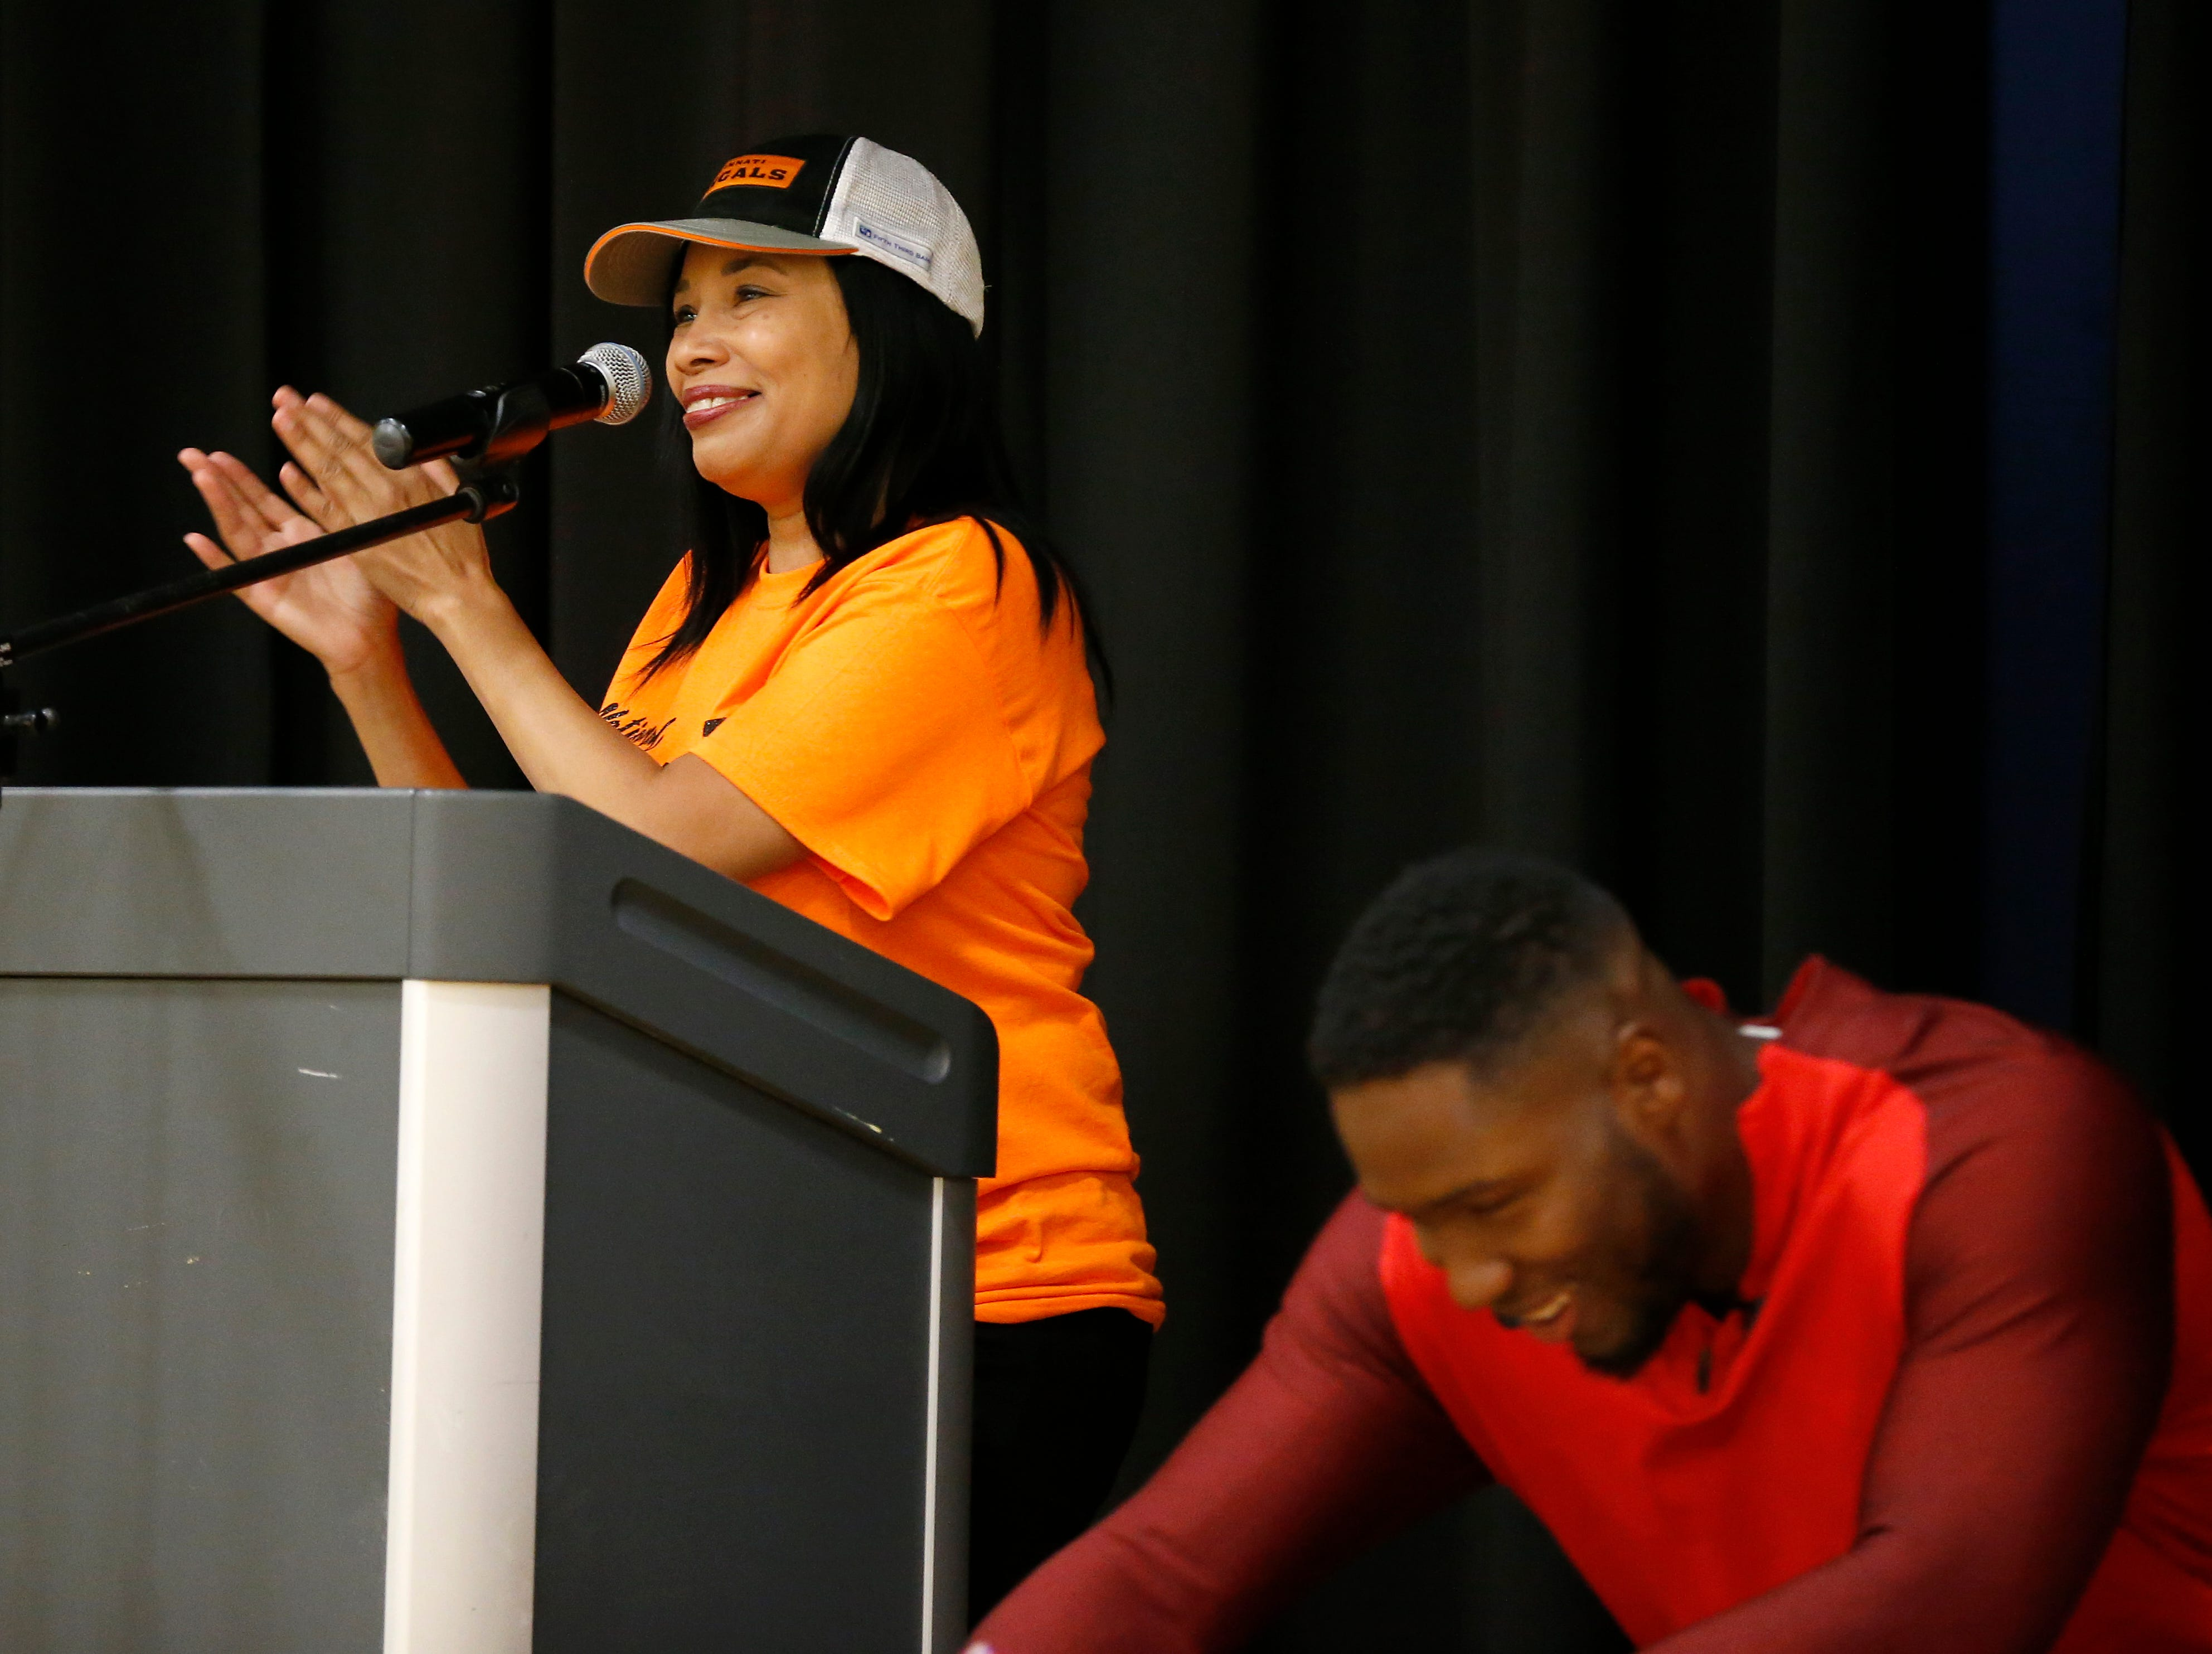 """National Youth Foundation co-founder Sophia Hanson introduces Carlos Dunlap of the Cincinnati Bengals during an assembly at Winton Hills Academy in Cincinnati on Tuesday, Sept. 18, 2018. Five students of the academy were named winners, becoming published authors, of a national contest for a book about anti-bullying. The students' book, """"Misunderstanding Micah"""" was selected as the winner of the 2018 National Student Book Scholar Competition by The National Youth Foundation."""